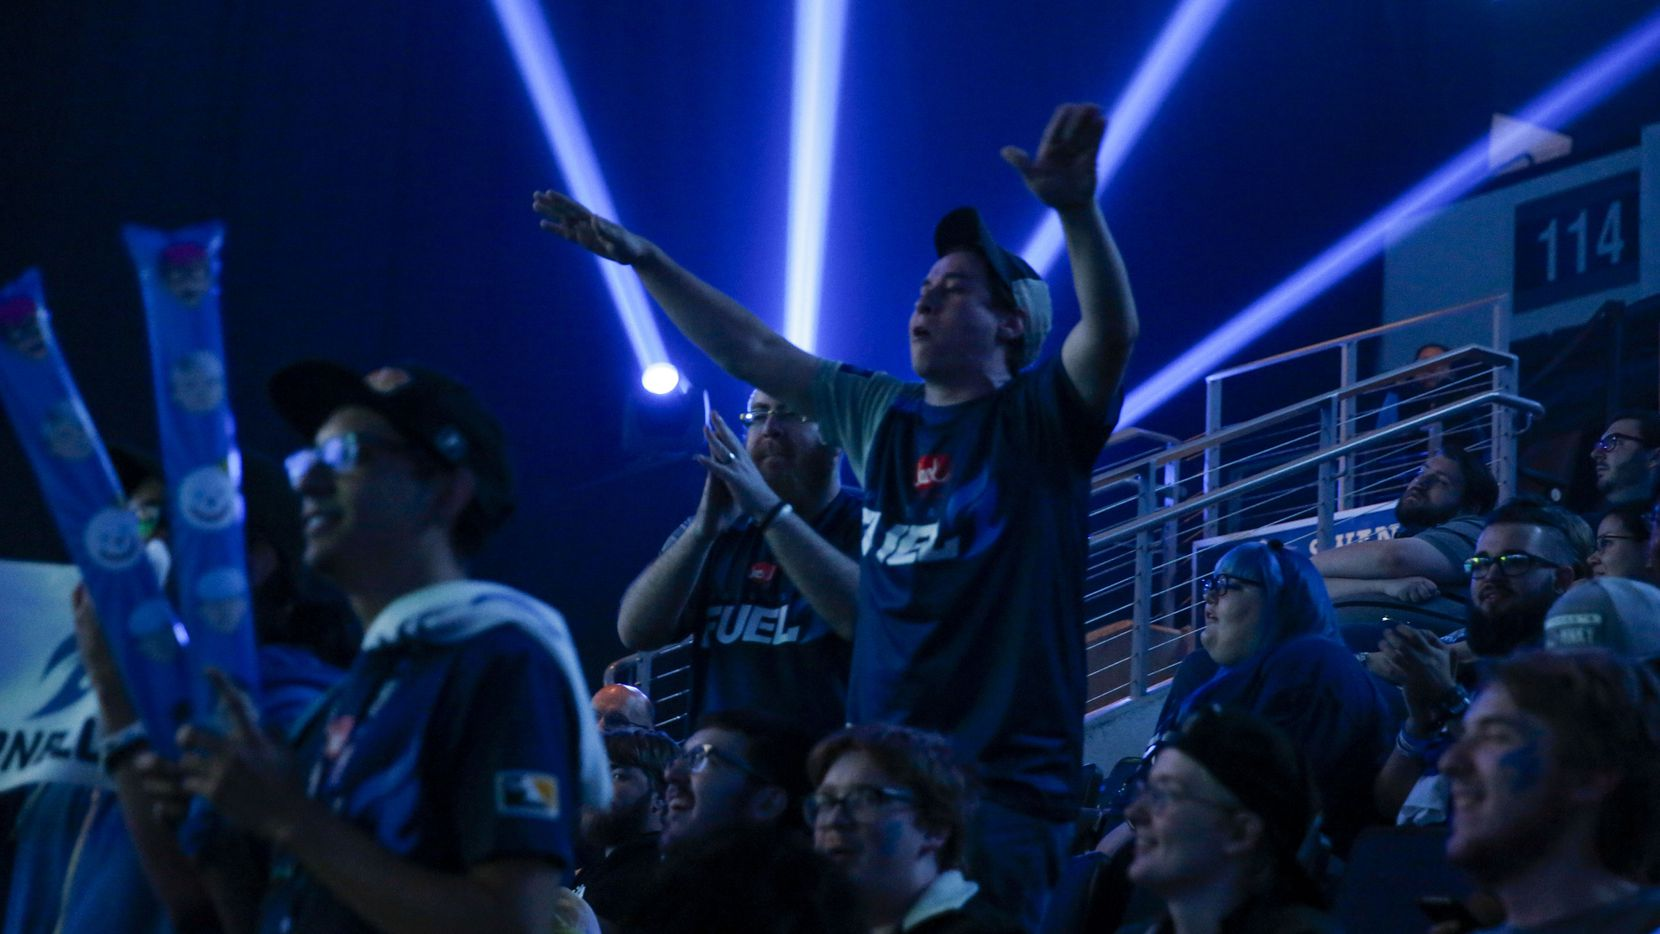 Fans celebrate during the Overwatch League match between the Dallas Fuel and the Houston Outlaws in Allen, Texas on Sunday, April 28, 2019.